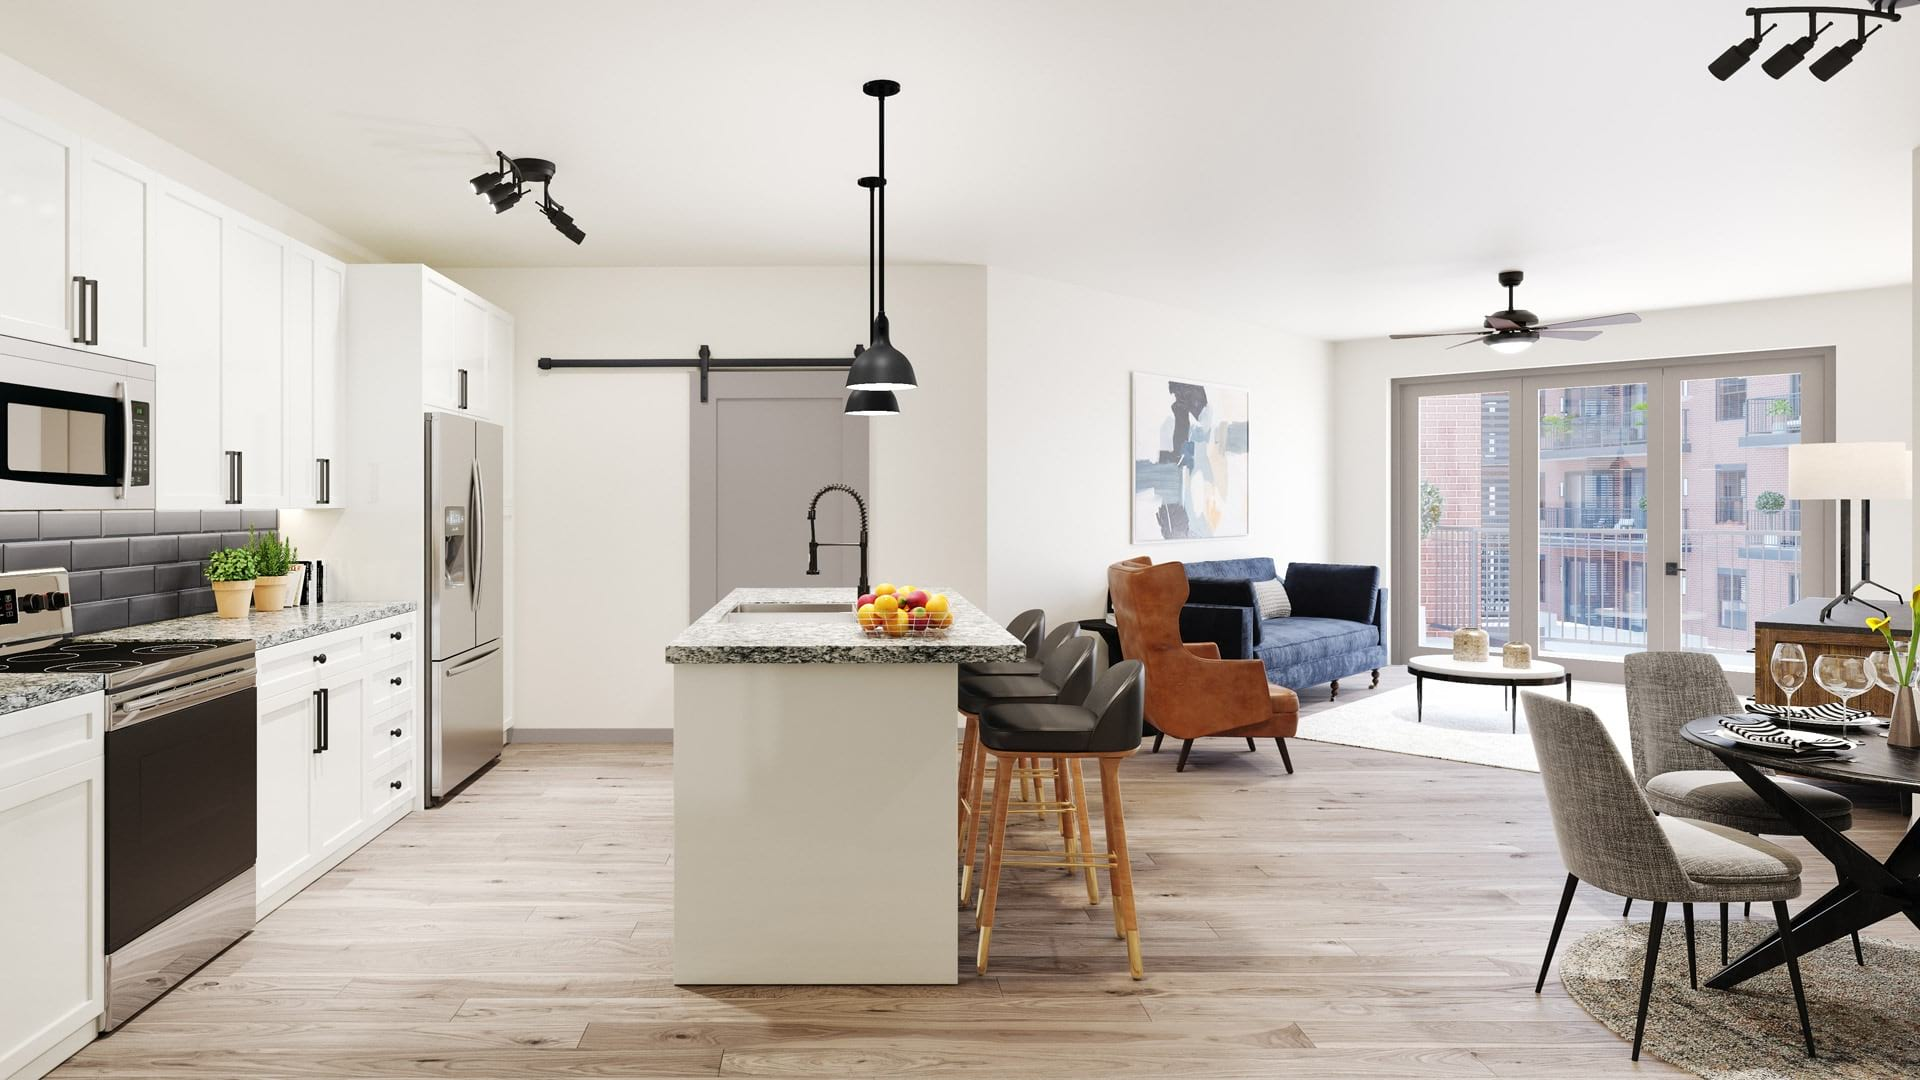 brightly lit kitchen and island open to living room and dining area